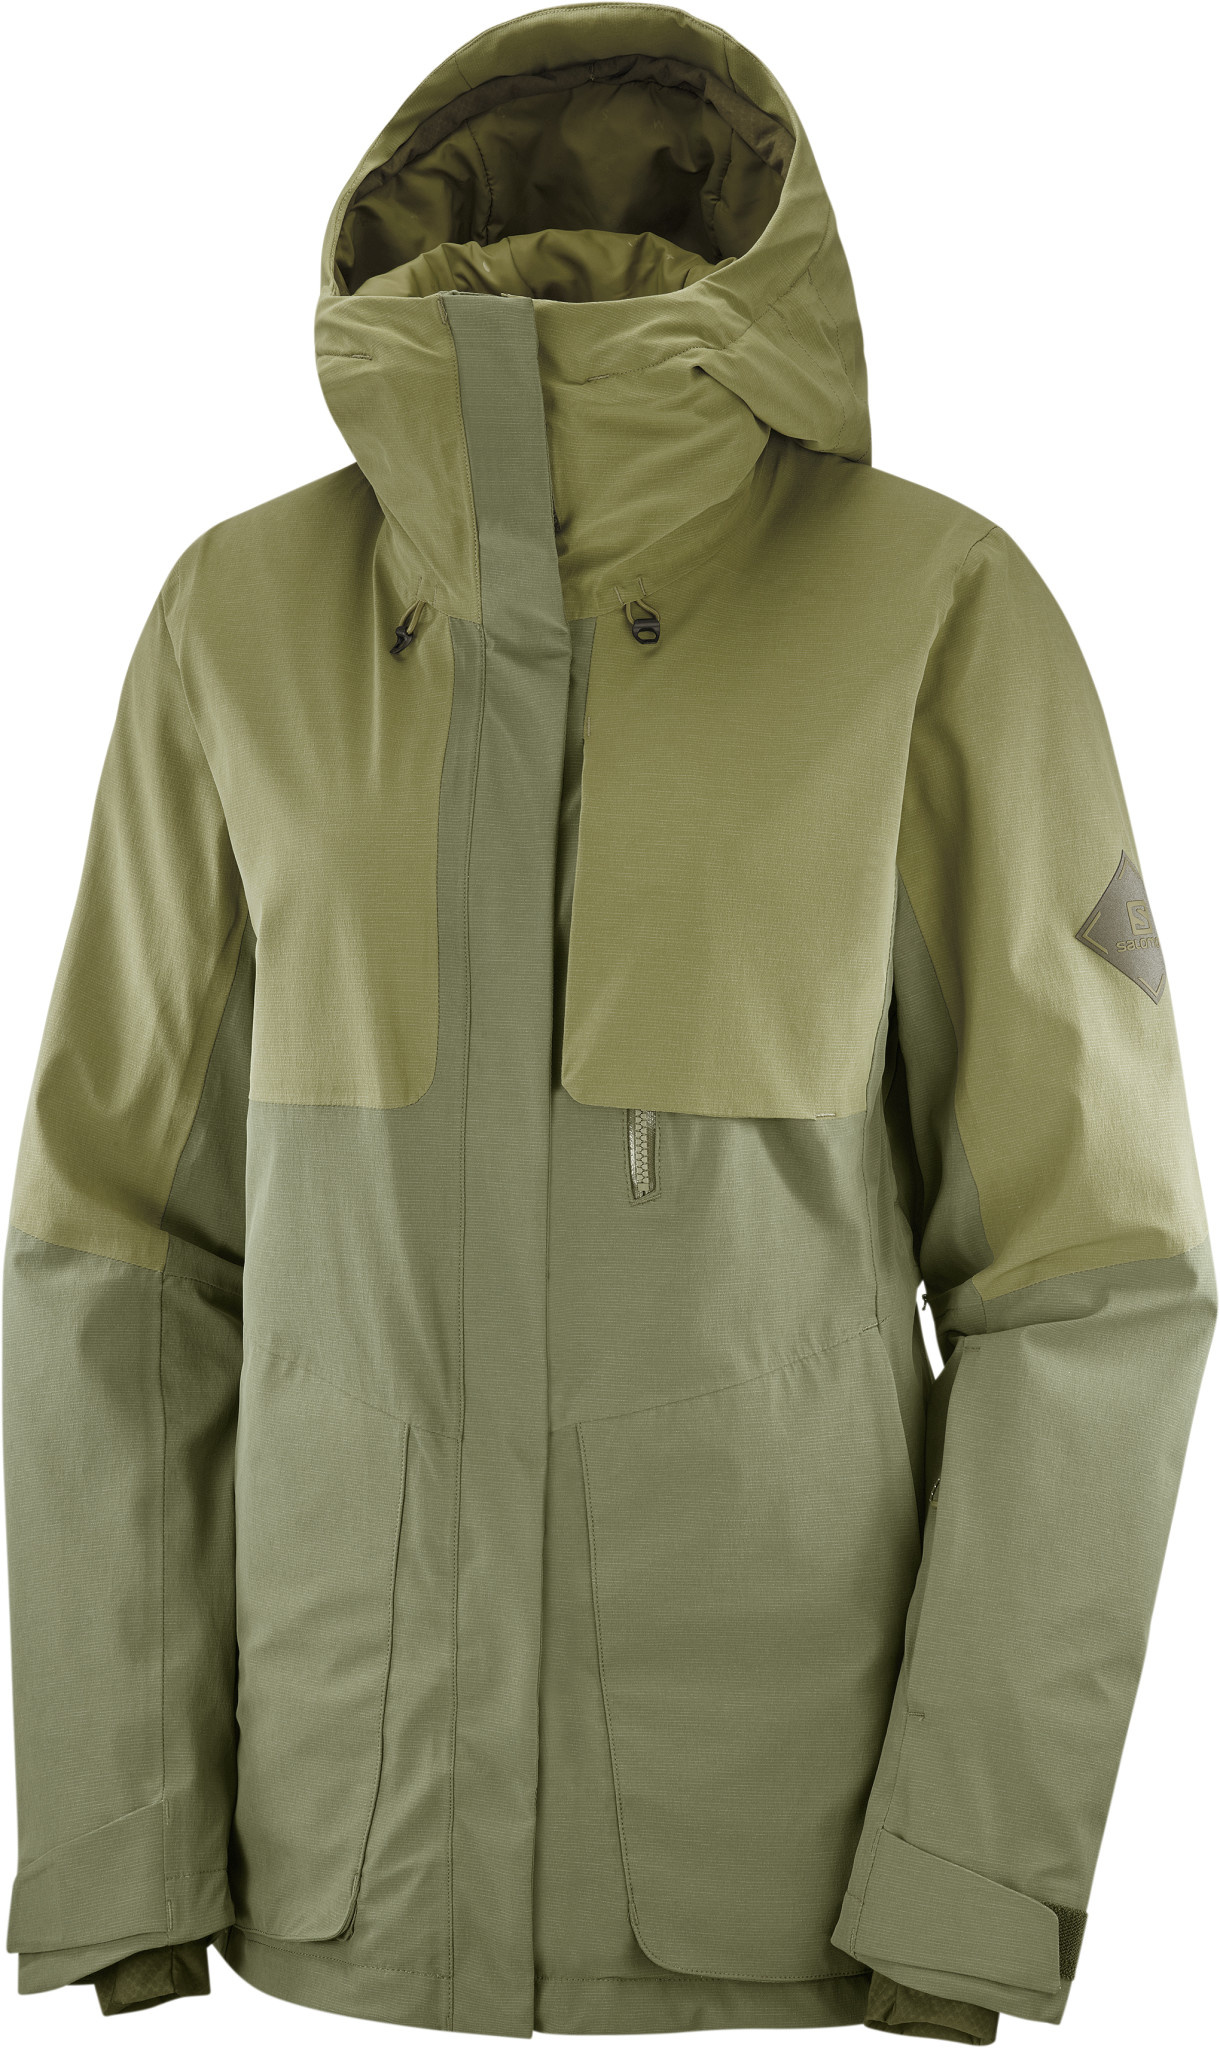 PROOF LT INSULATED JACKET W-3